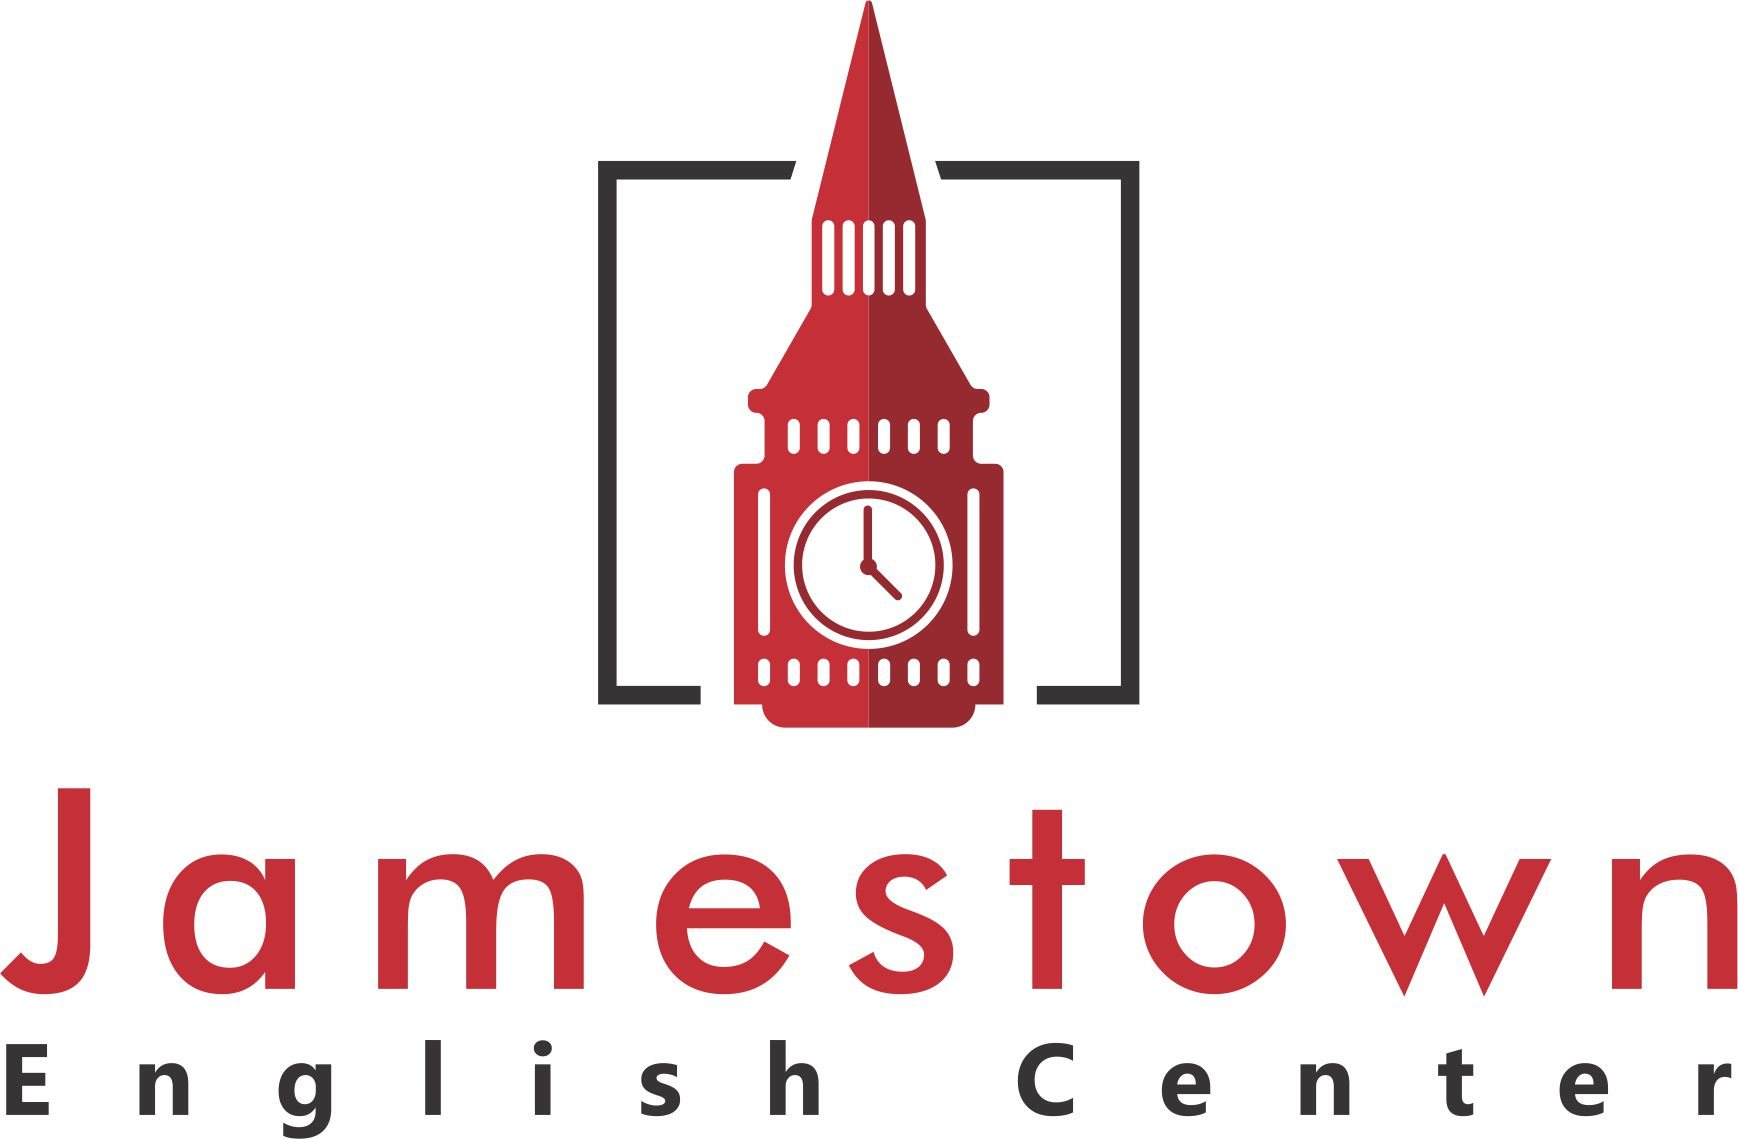 JAMESTOWN ENGLISH CENTER